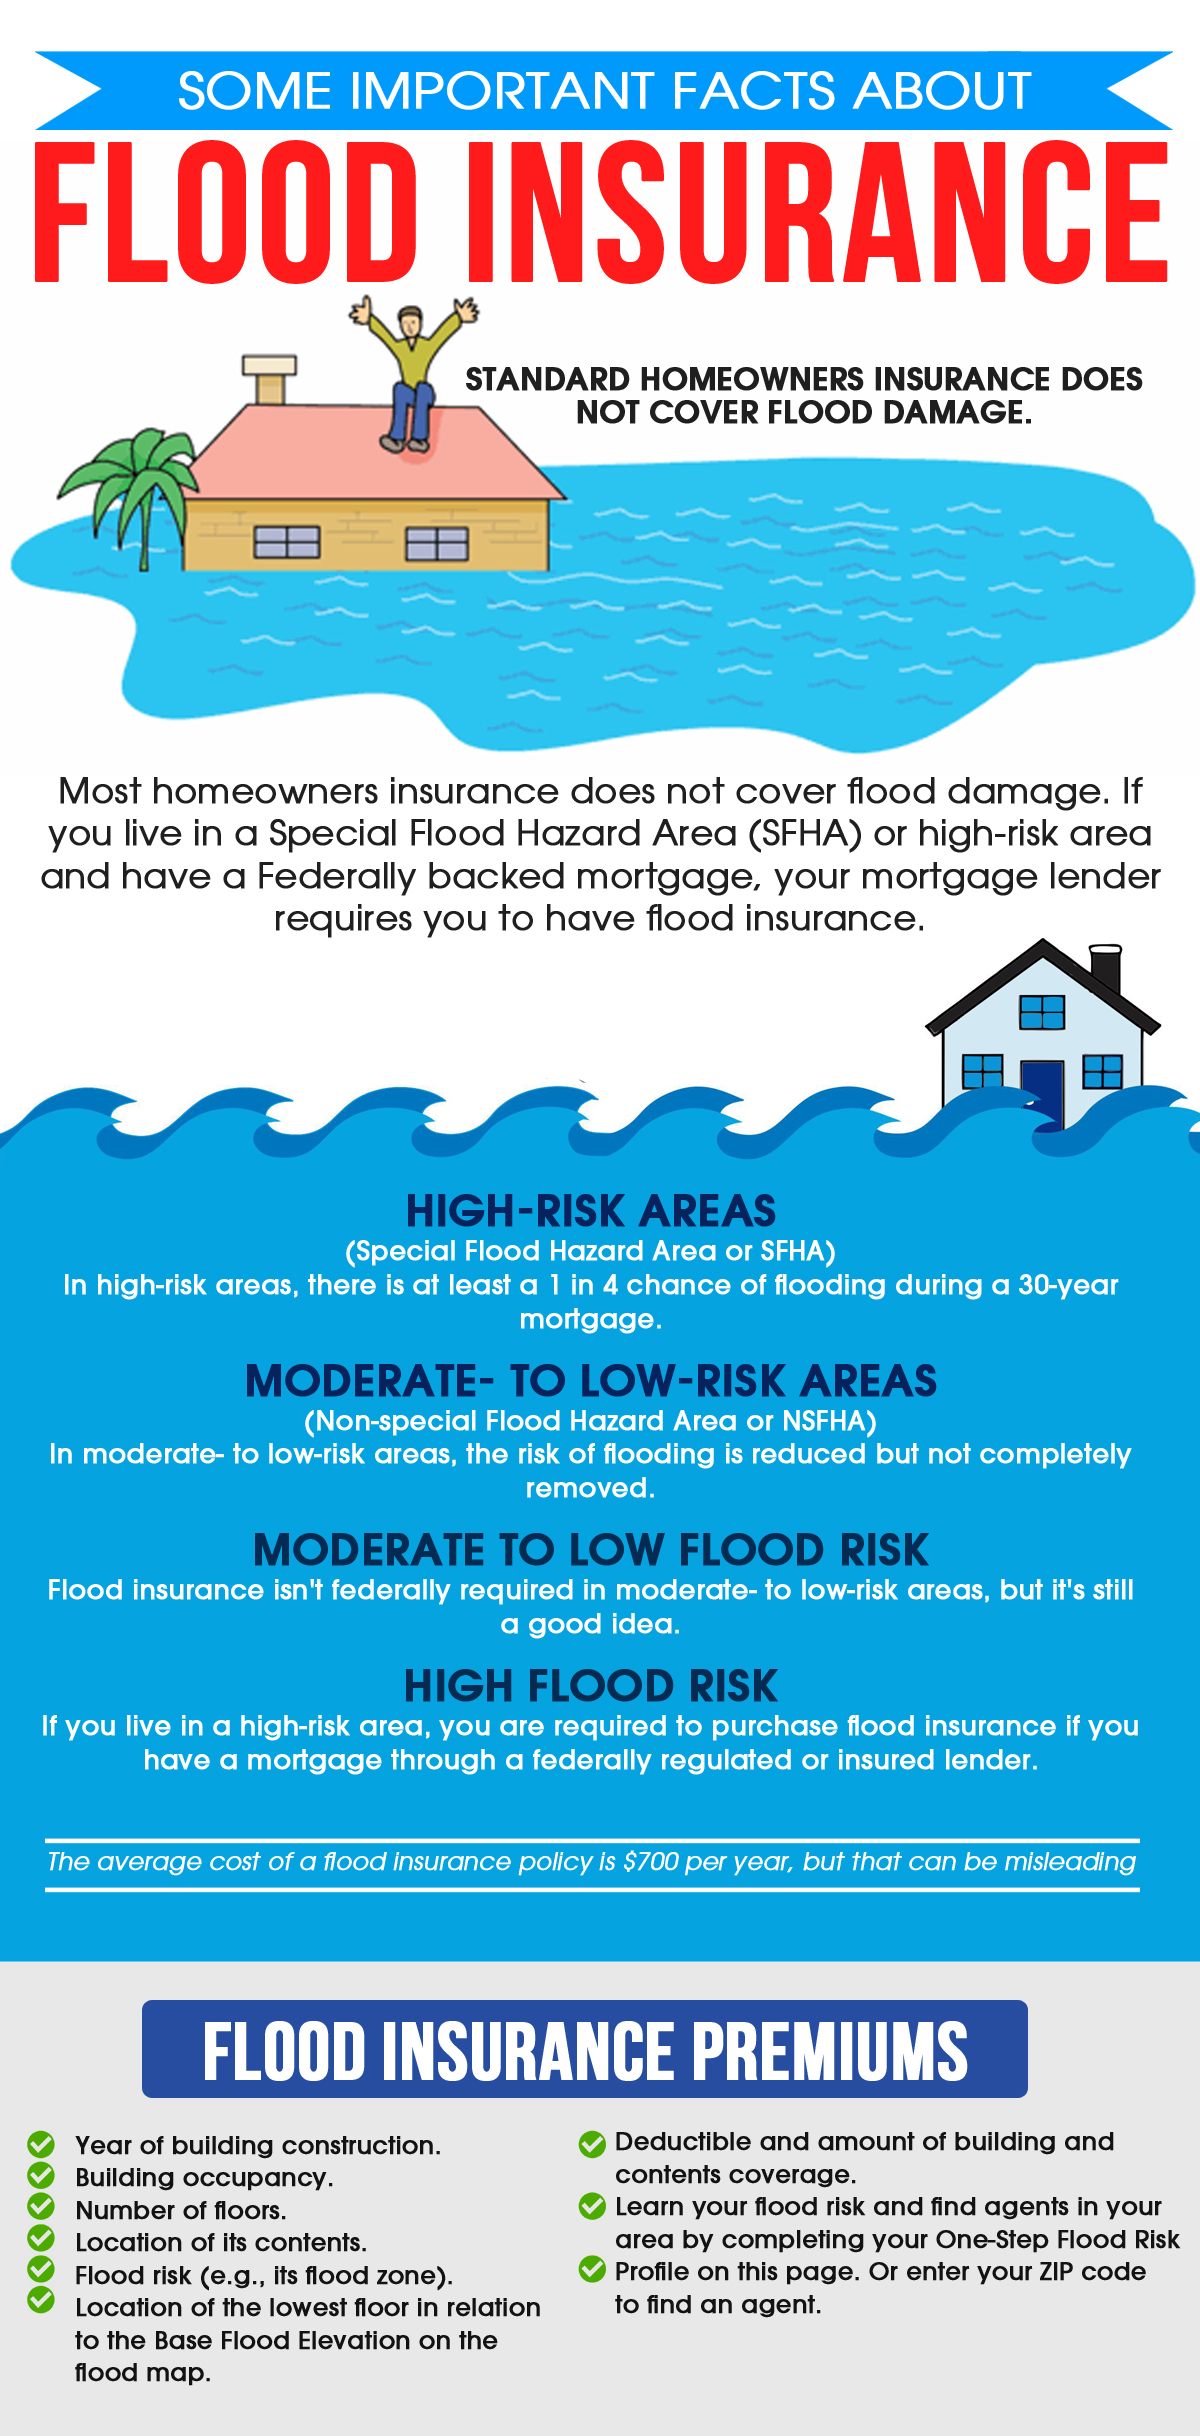 Some Important Facts About Flood Insurance